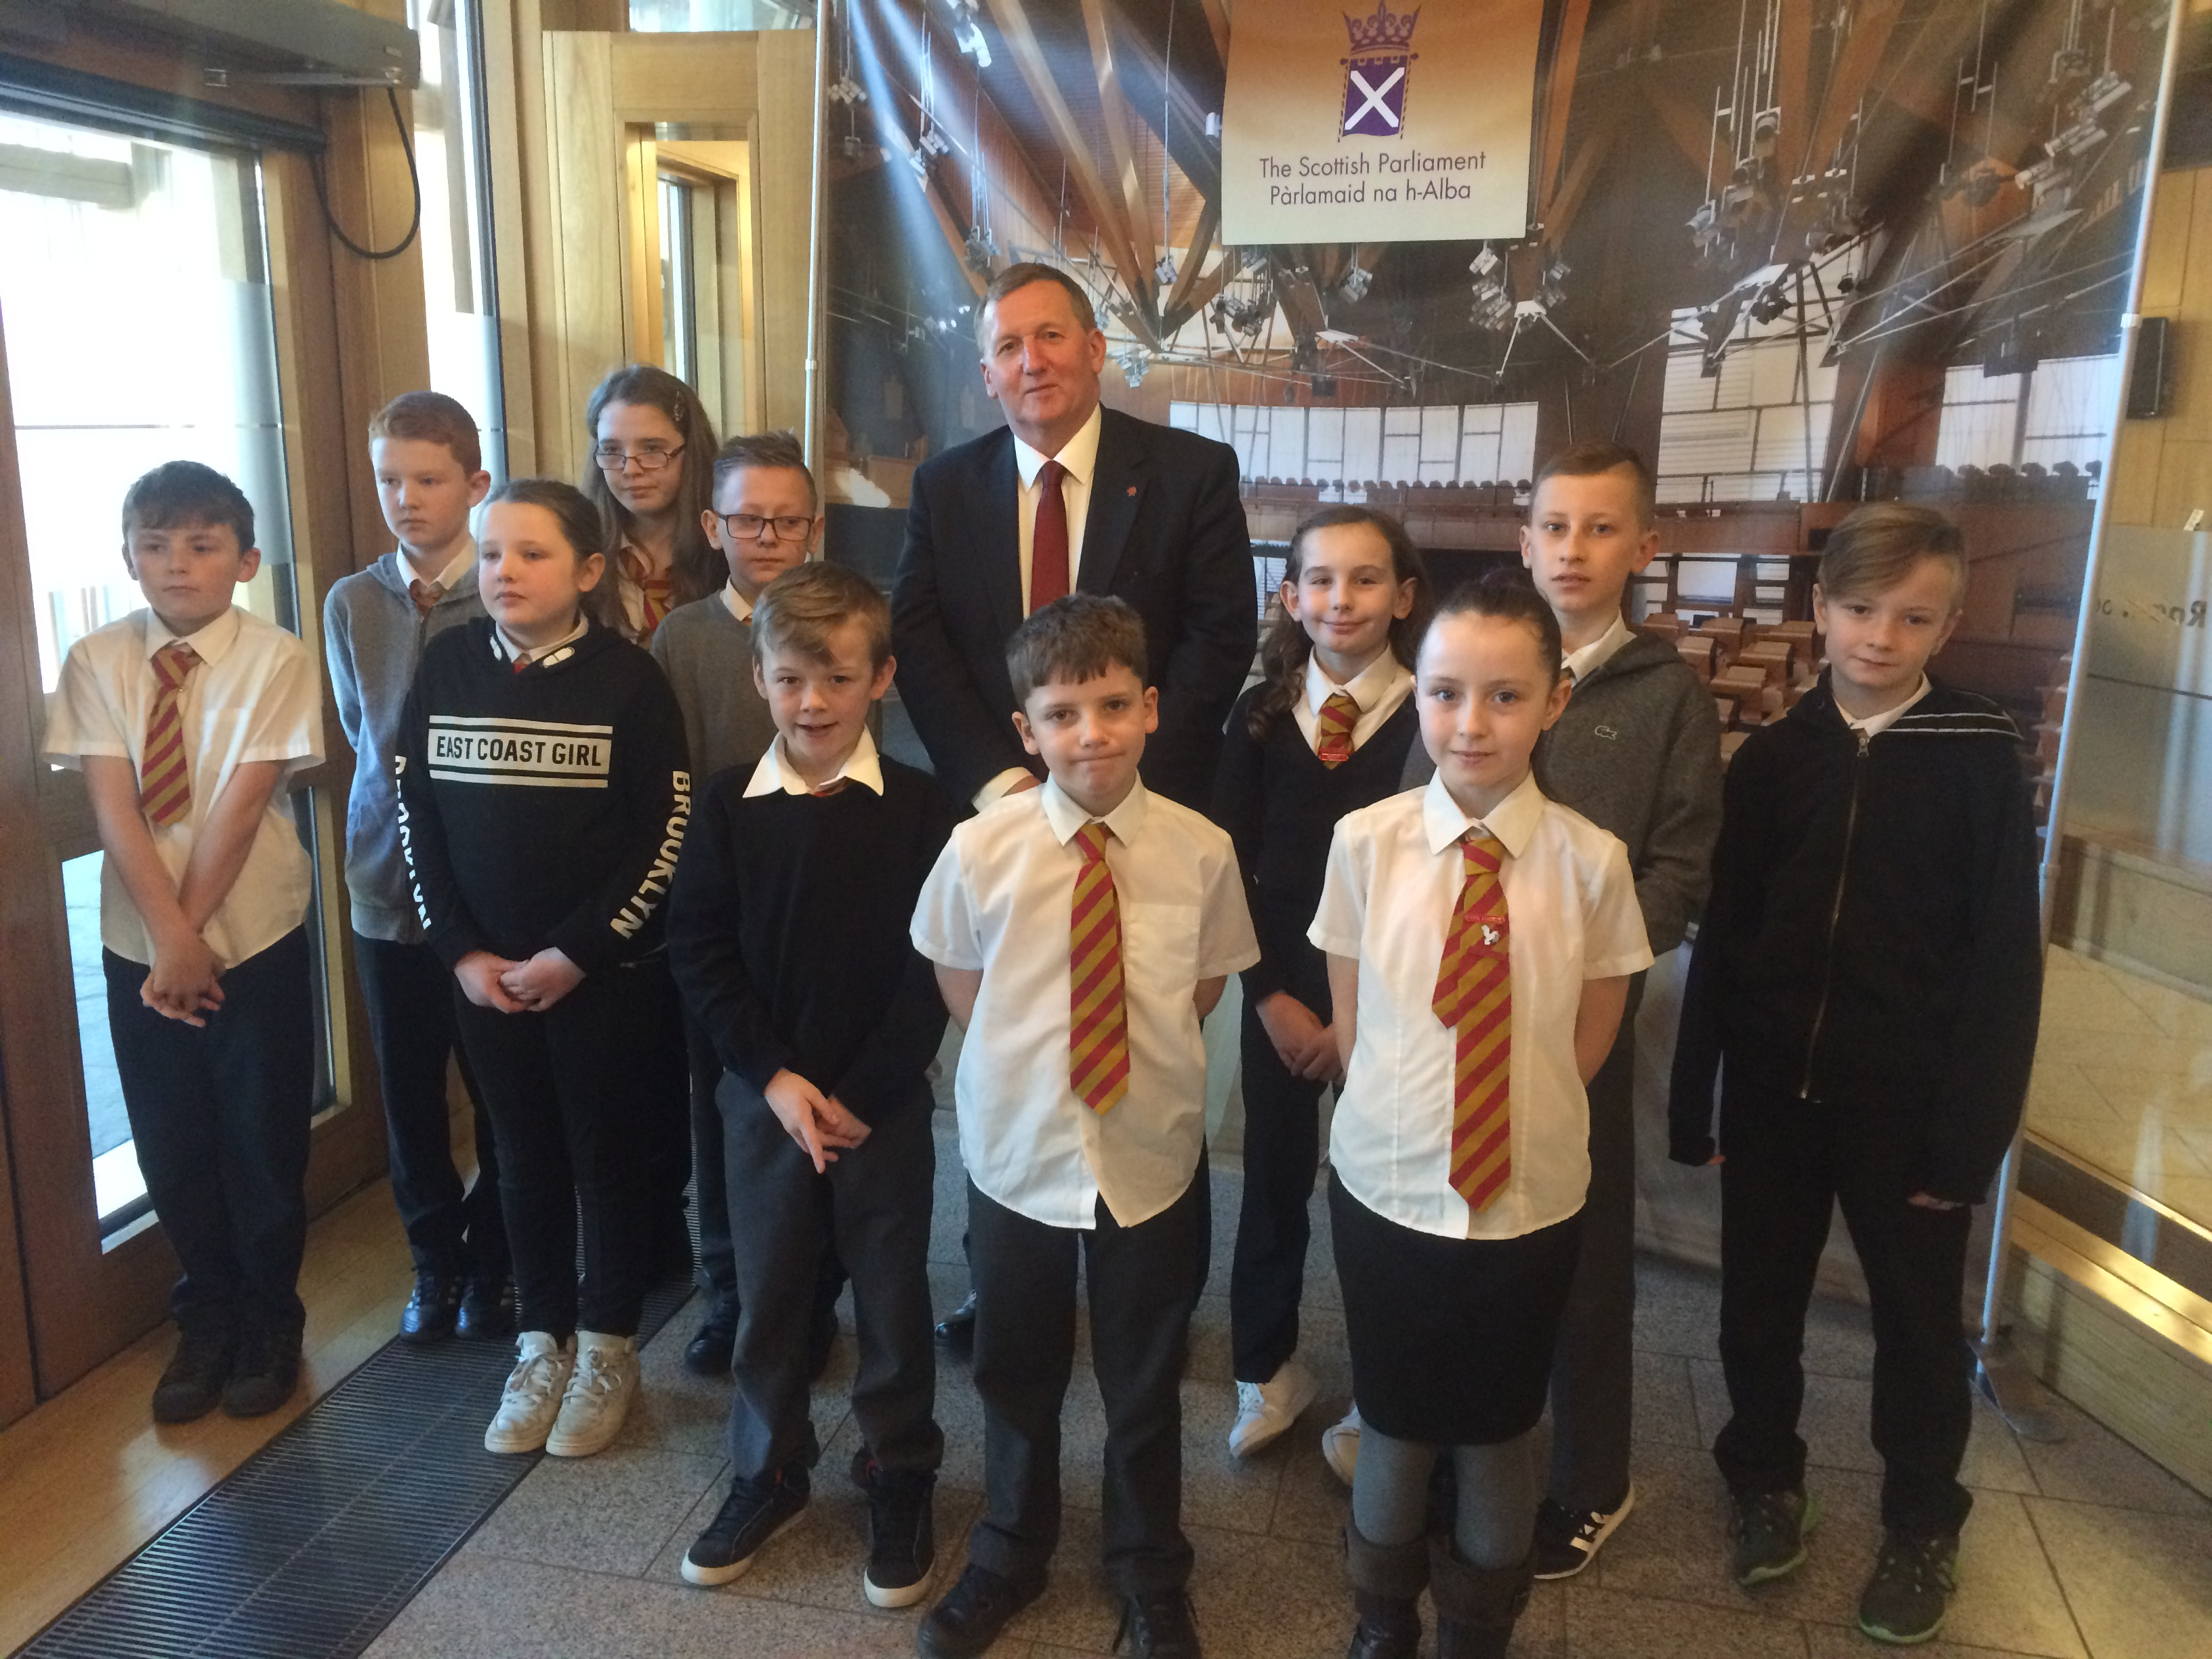 St Kenneths Parliament visit